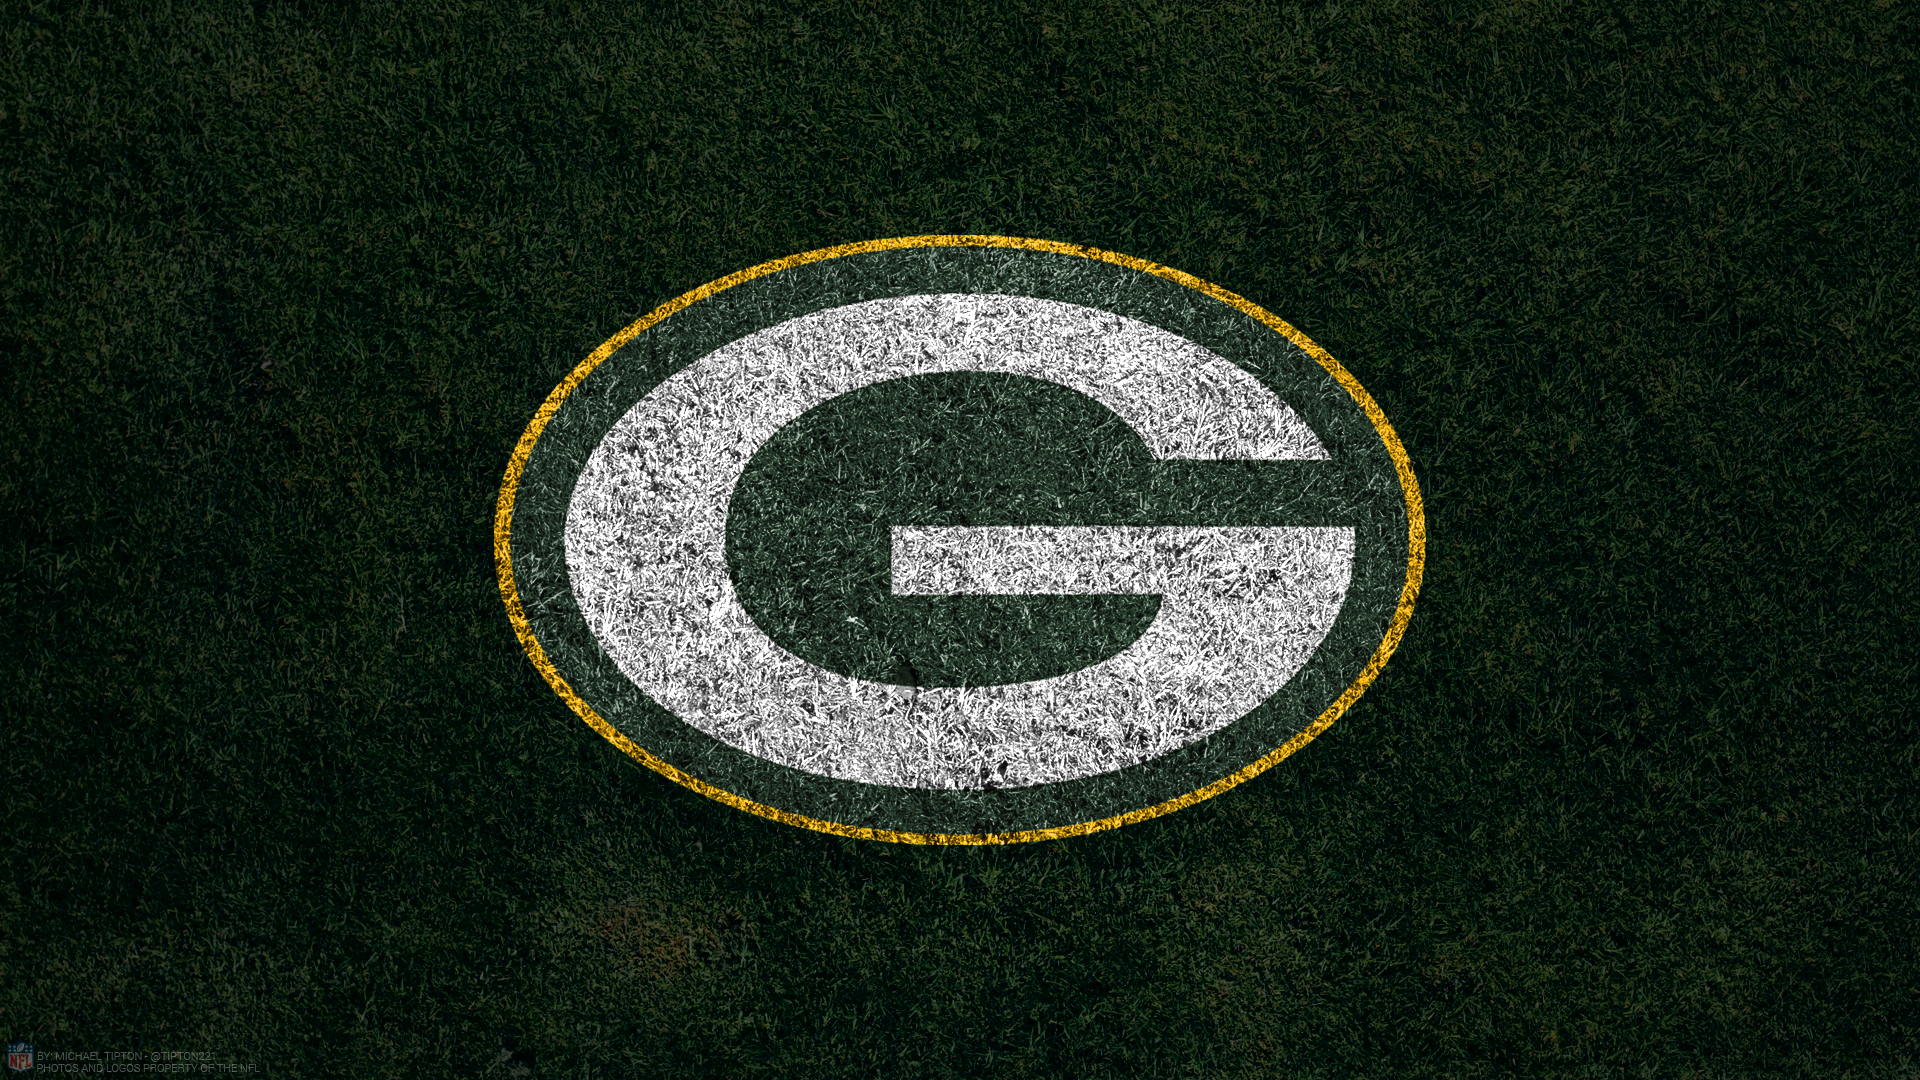 Green Bay Packers images Sick Packers Wallpaper HD